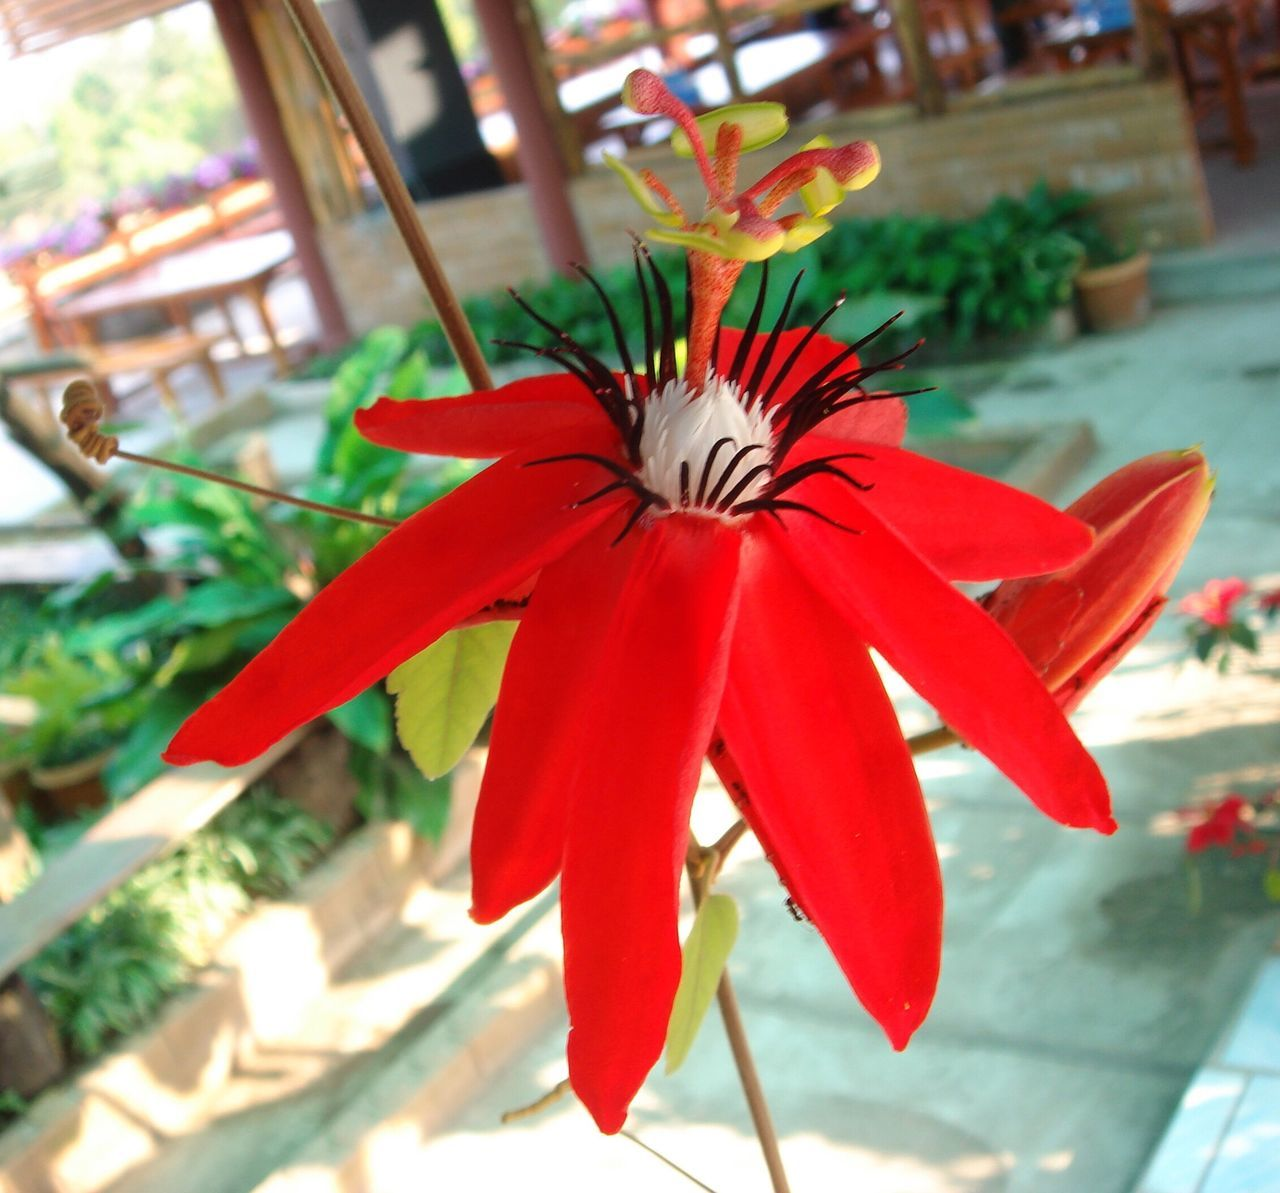 flower, flower head, petal, growth, freshness, focus on foreground, red, fragility, day, beauty in nature, nature, close-up, no people, blooming, outdoors